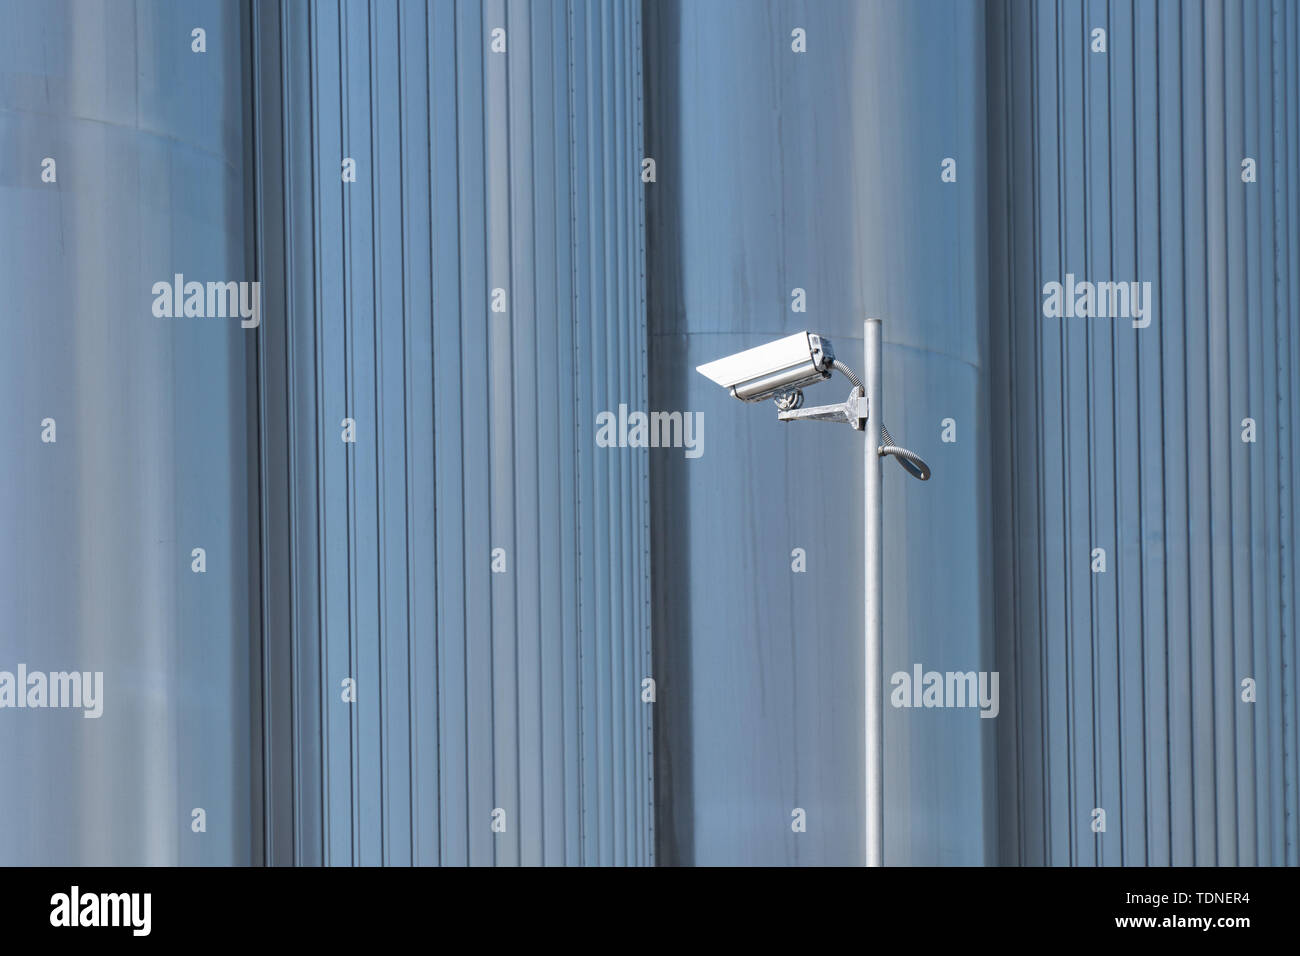 Security camera on metallic background. Surveillance on industrial spaces - Stock Image